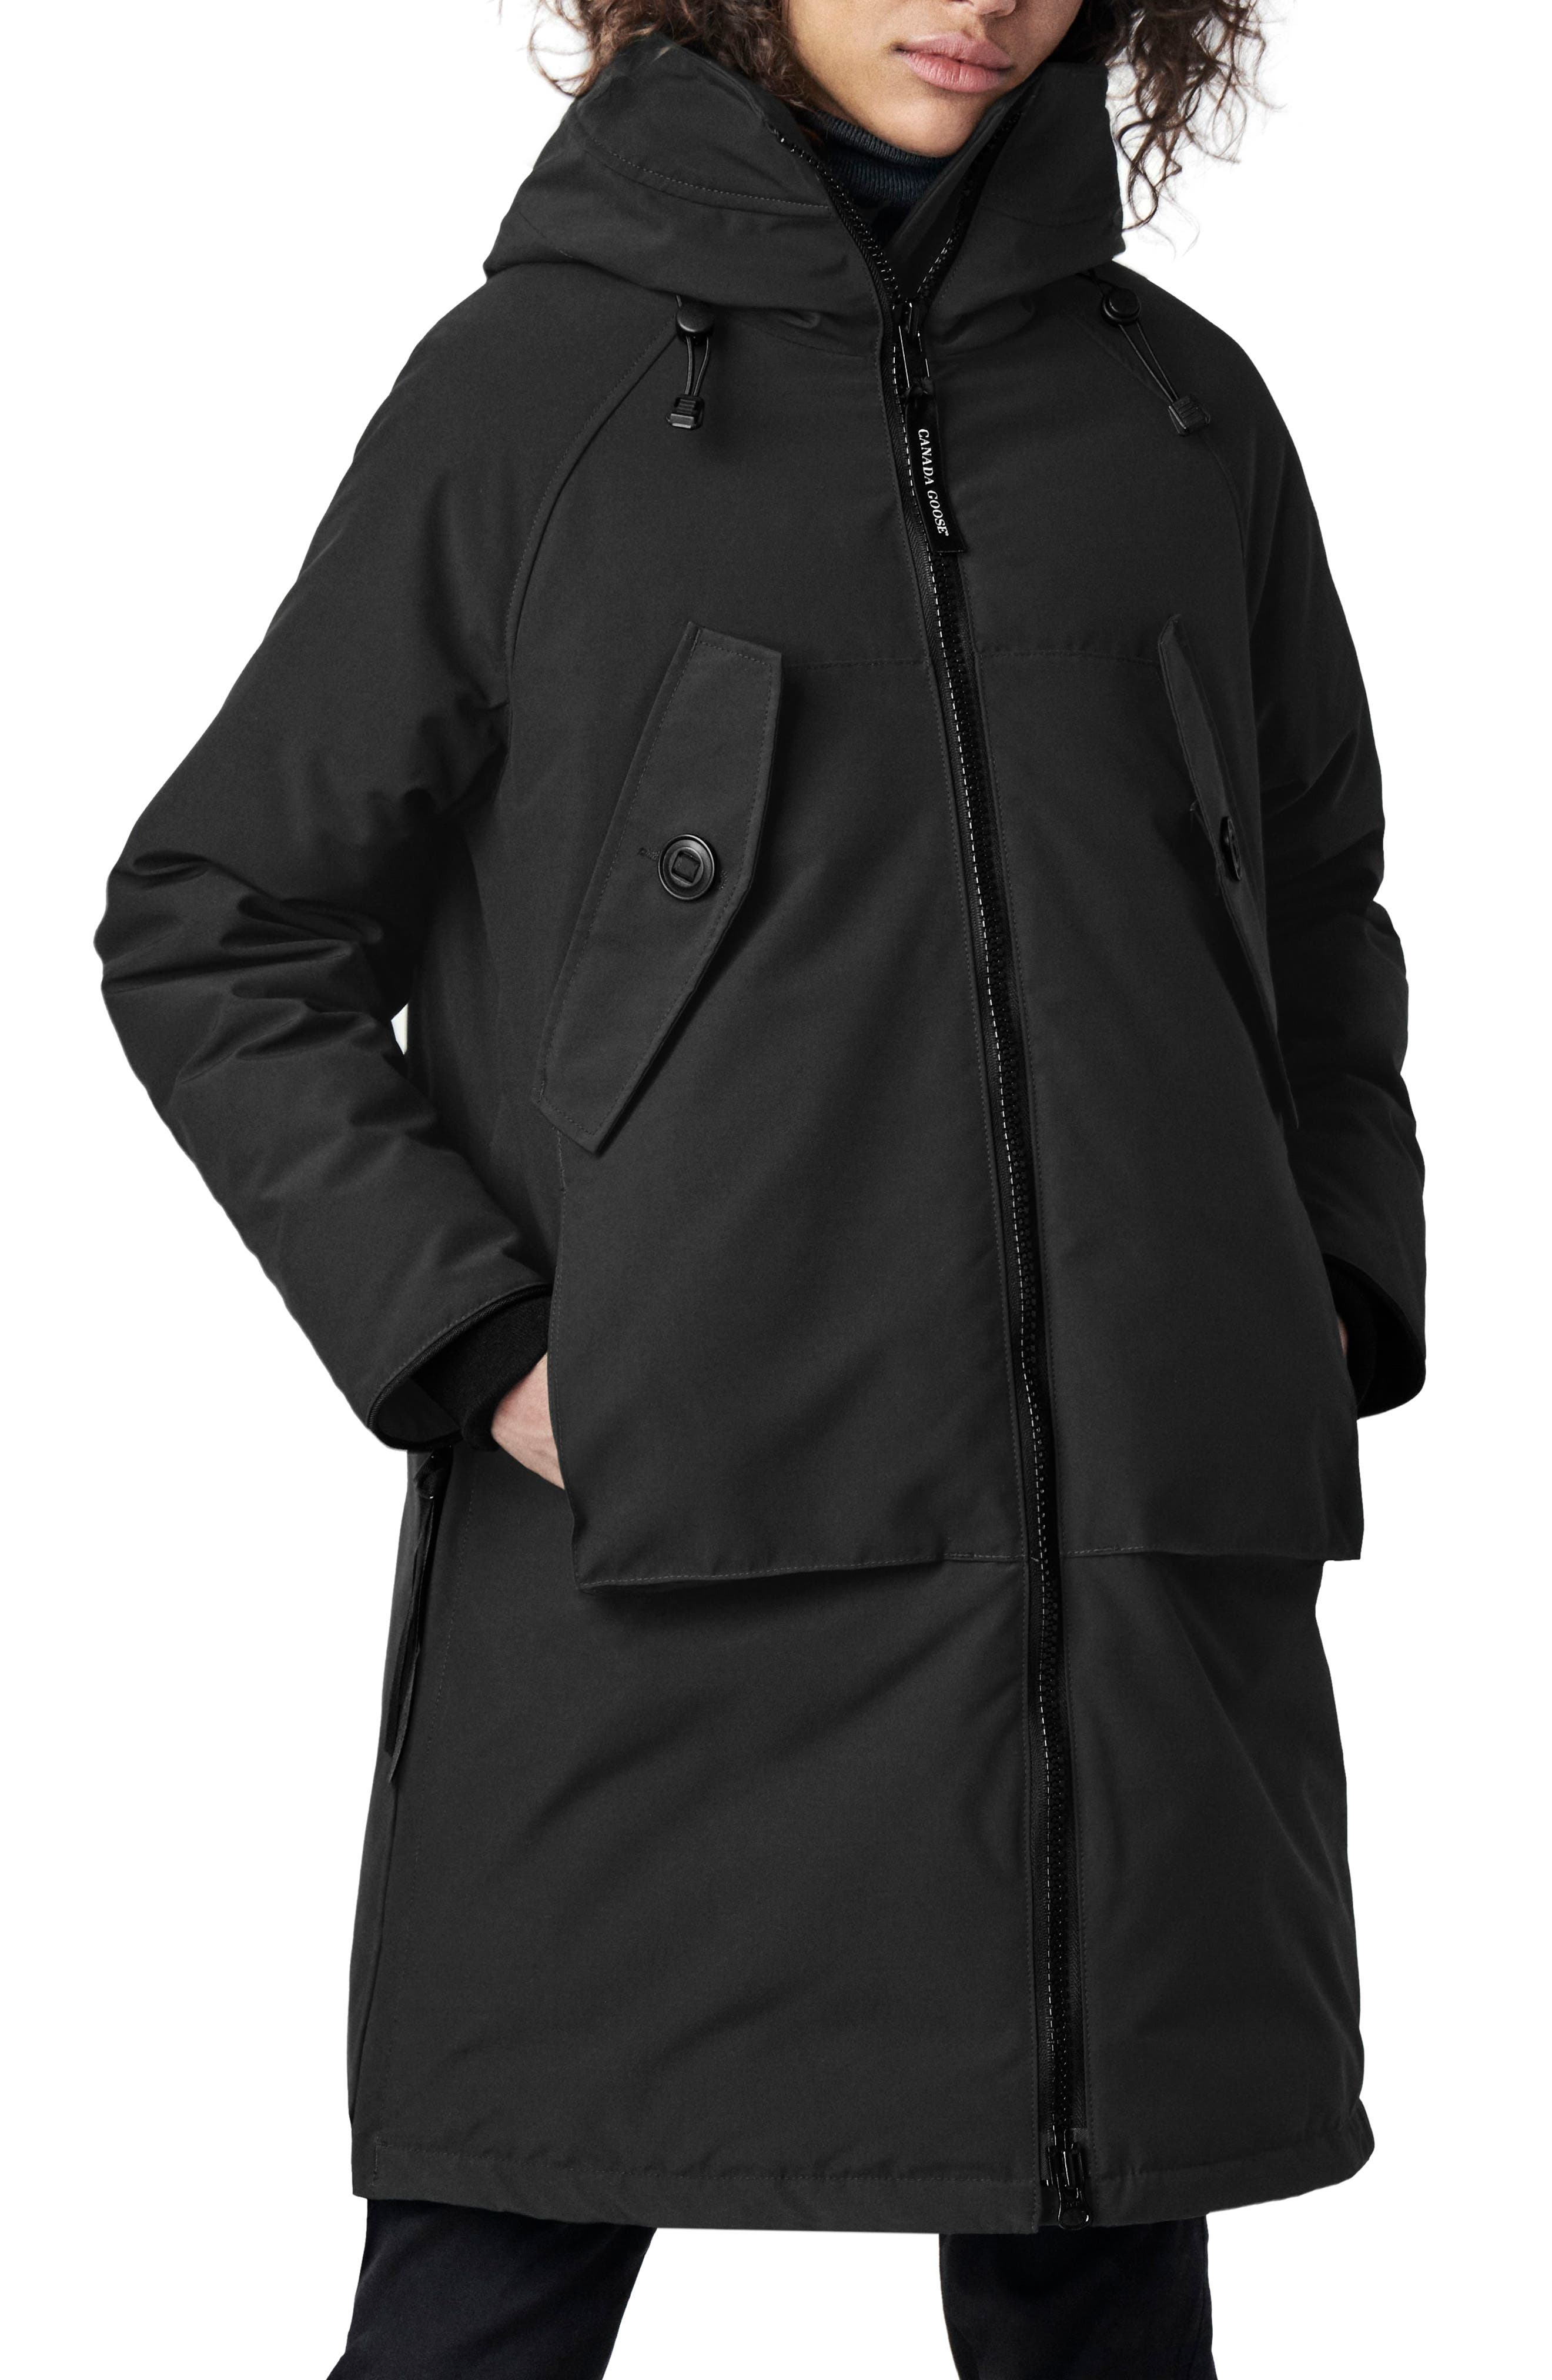 Canada Goose Olympia Down Parka, (0) - Black